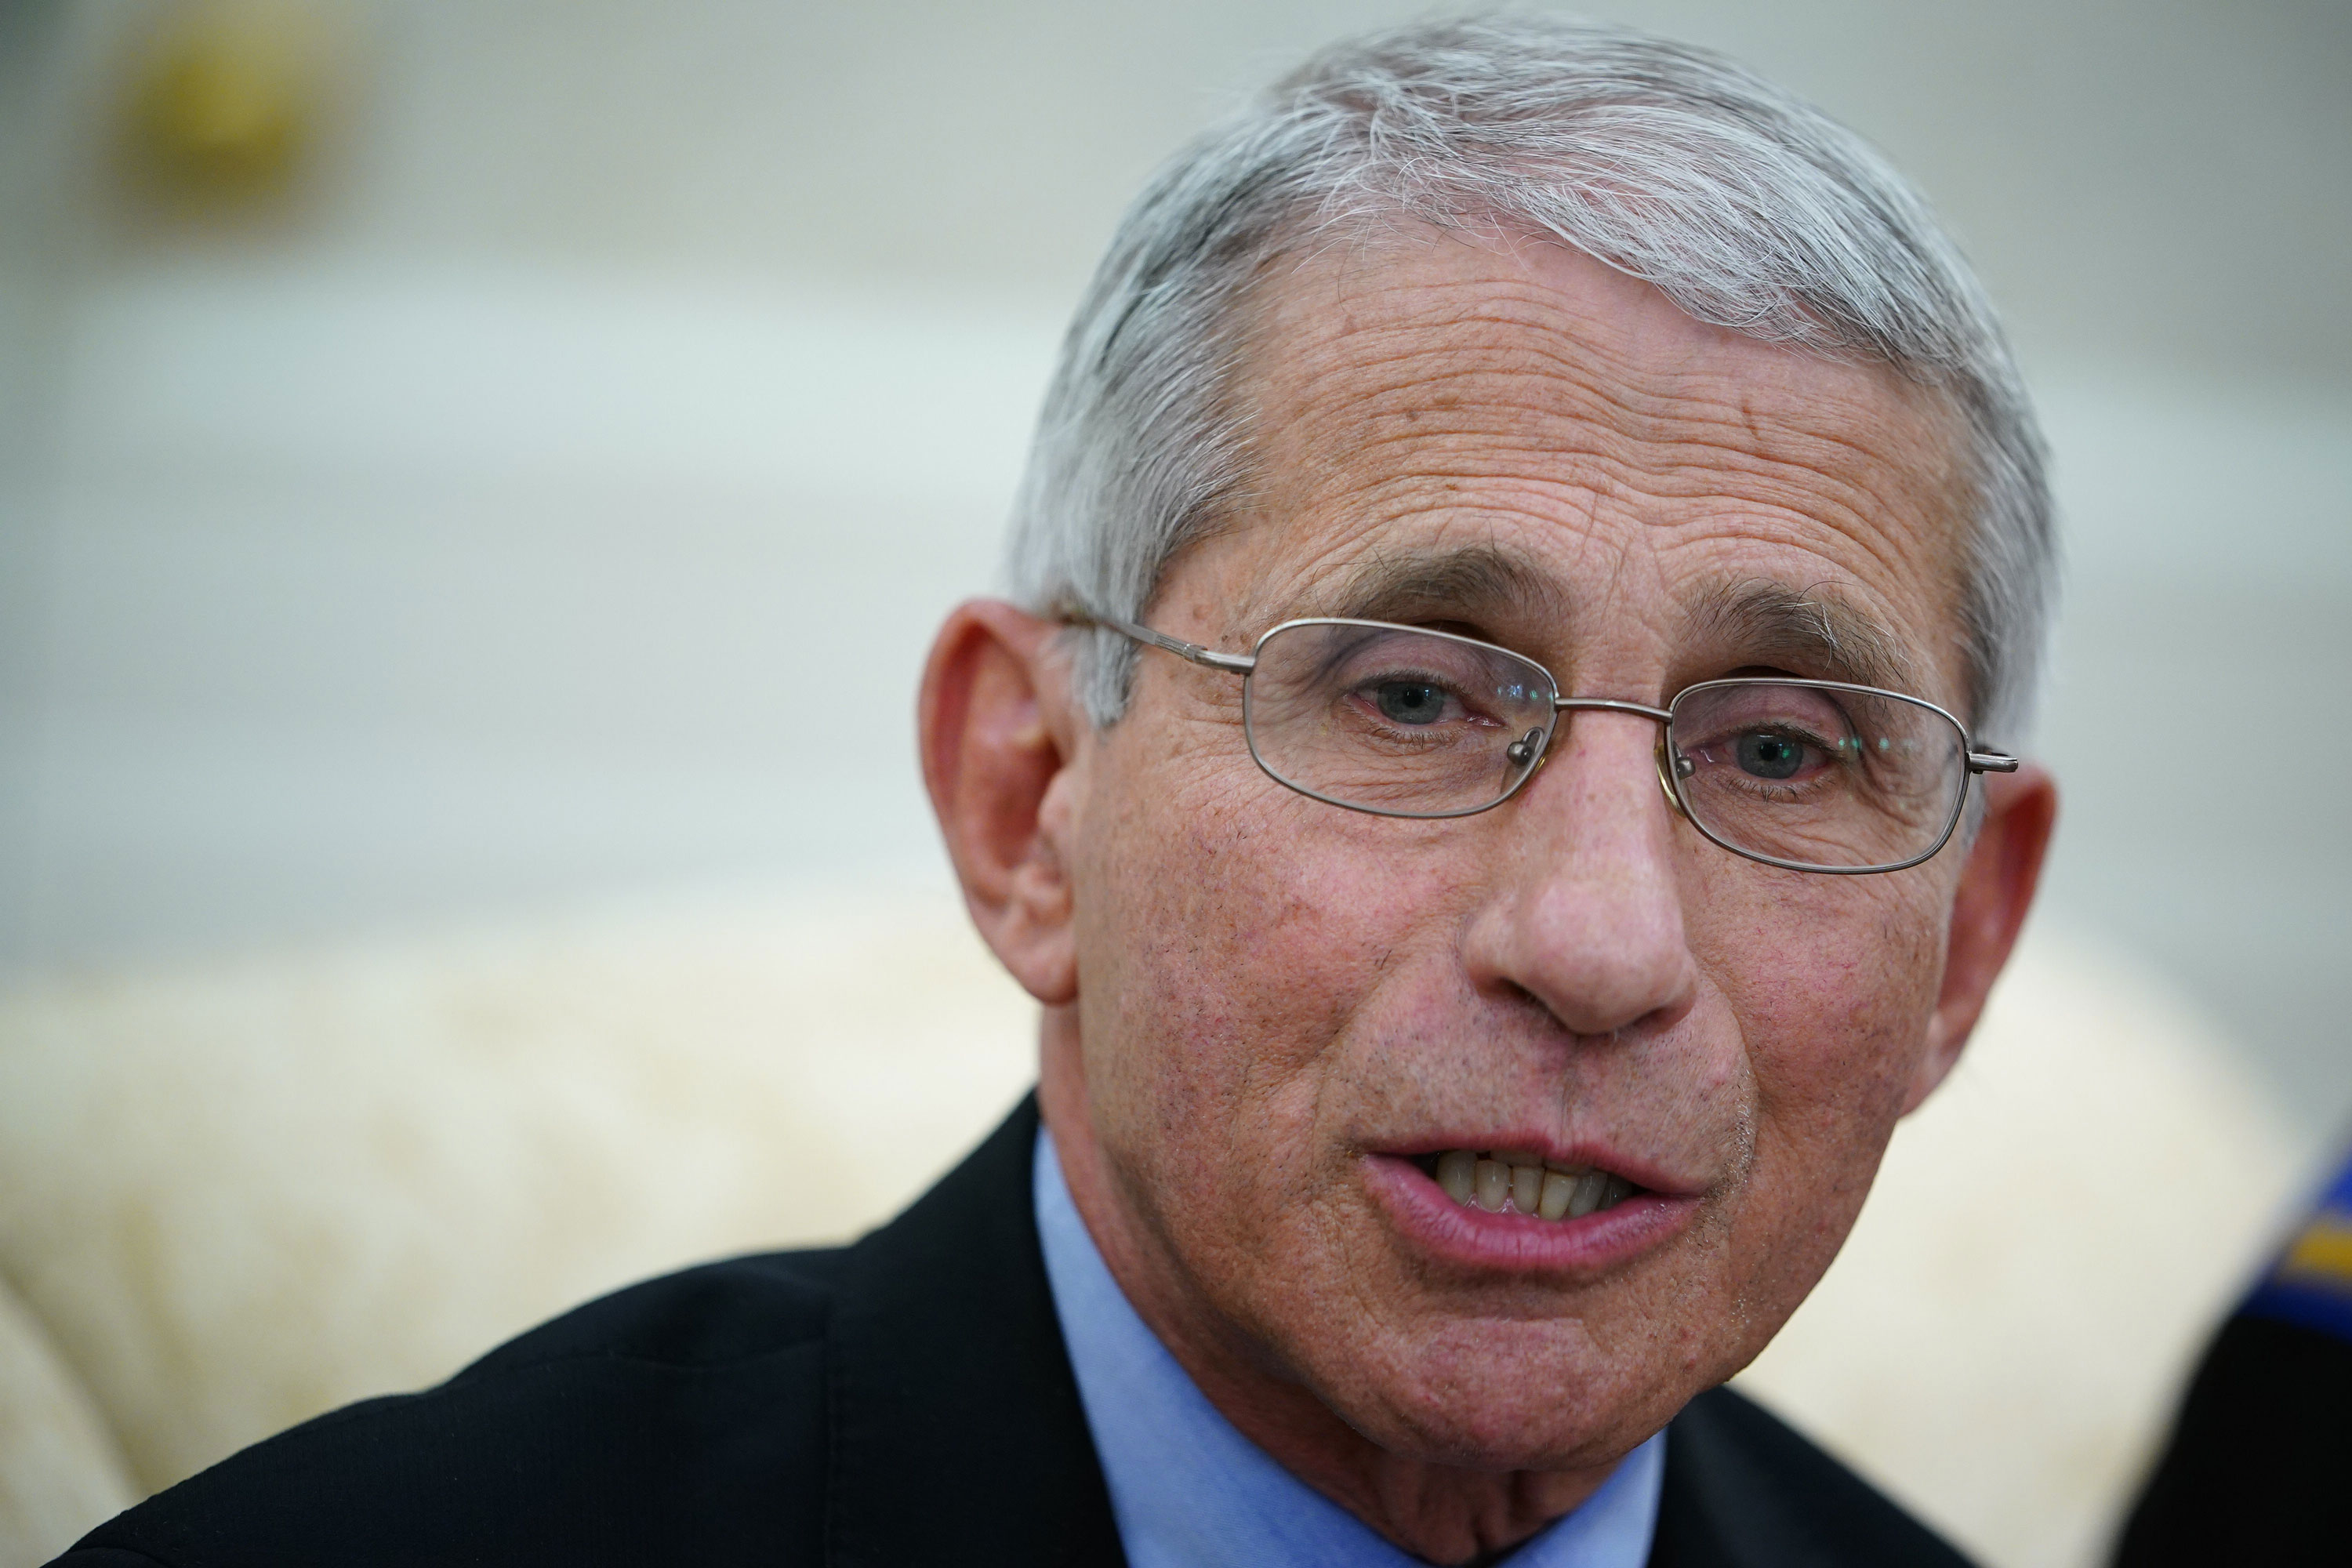 Dr. Anthony Fauci, director of the National Institute of Allergy and Infectious Diseases speaks during a meeting in the Oval Office of the White House in Washington on April 29.